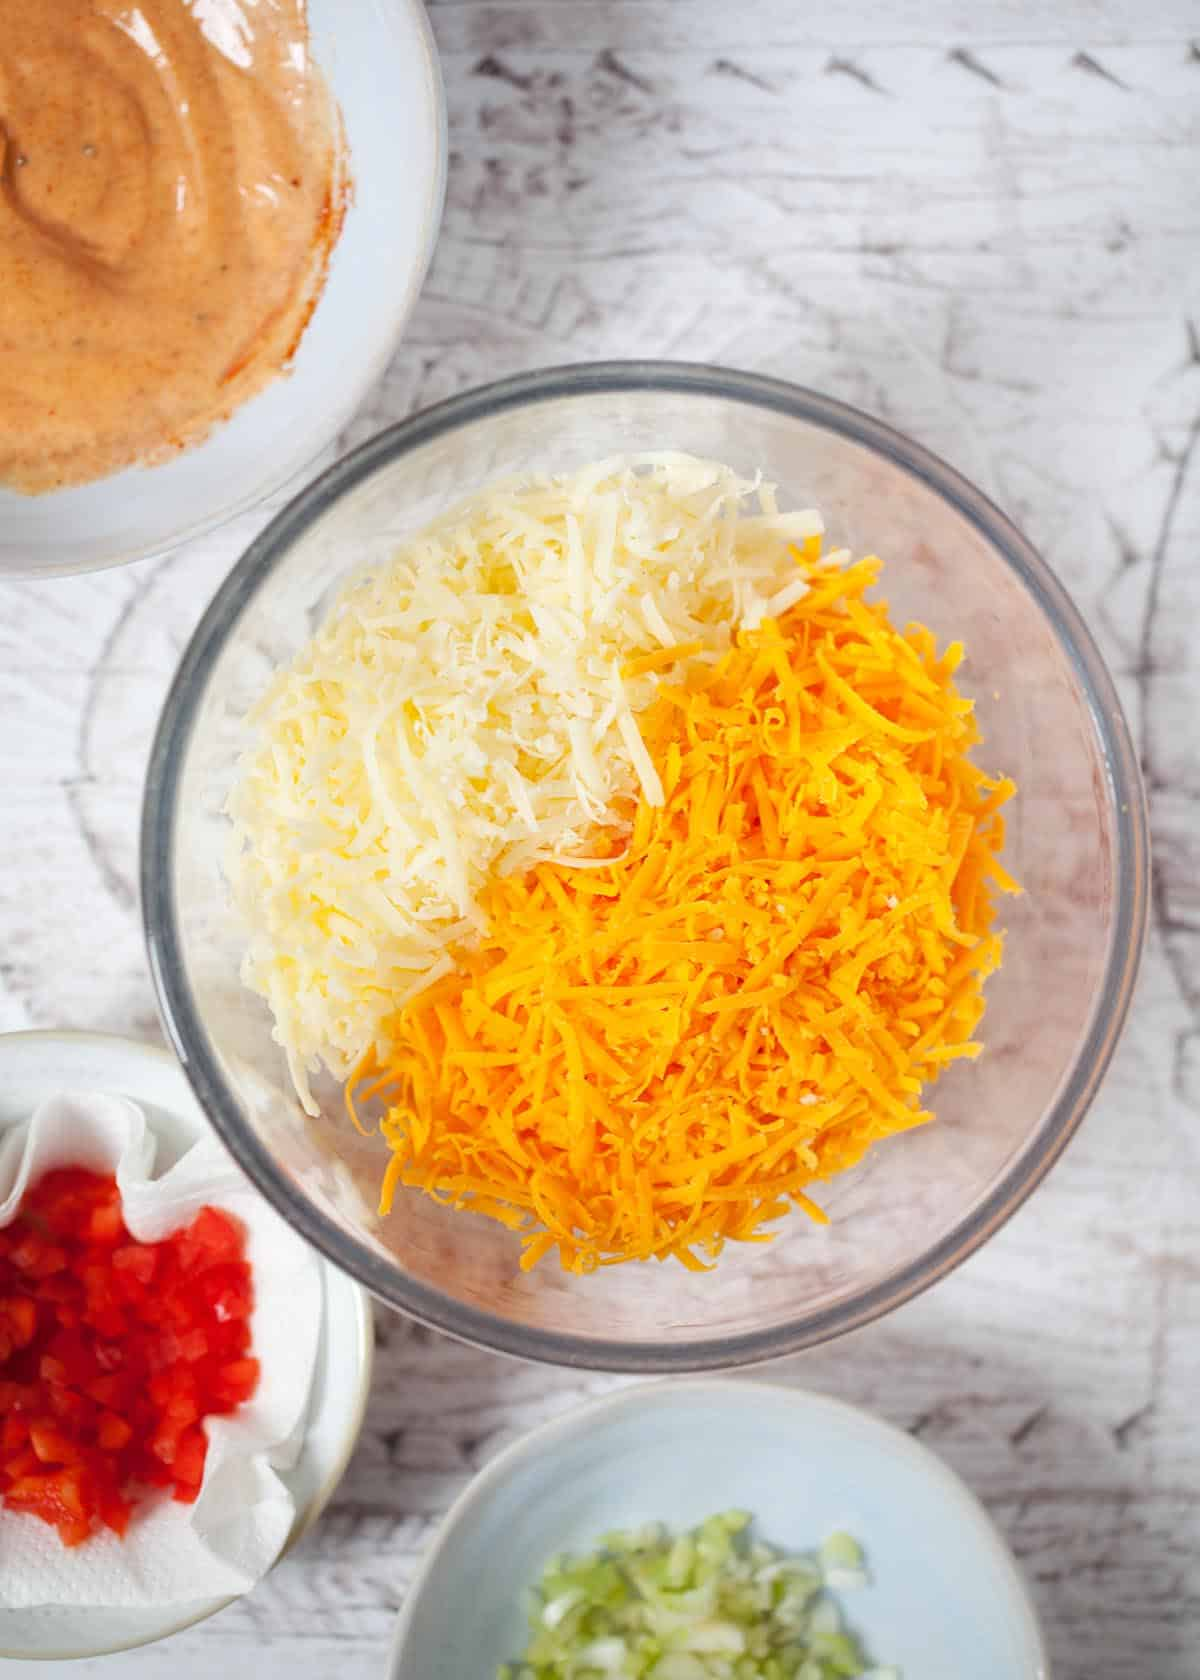 Two types of cheese (cheddar and red Leicester) finely grated into a bowl